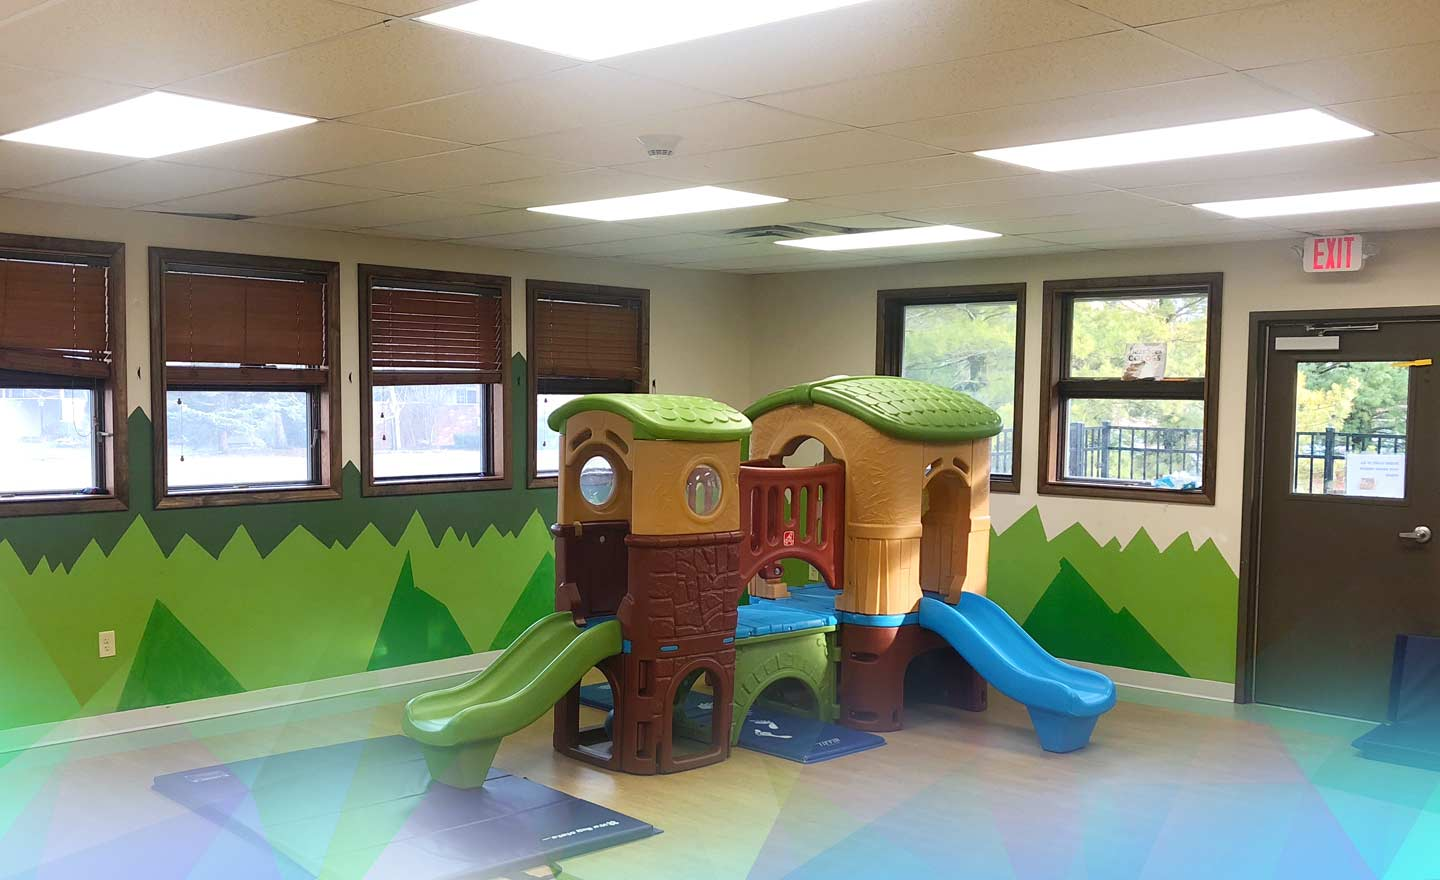 Playset at a daycare